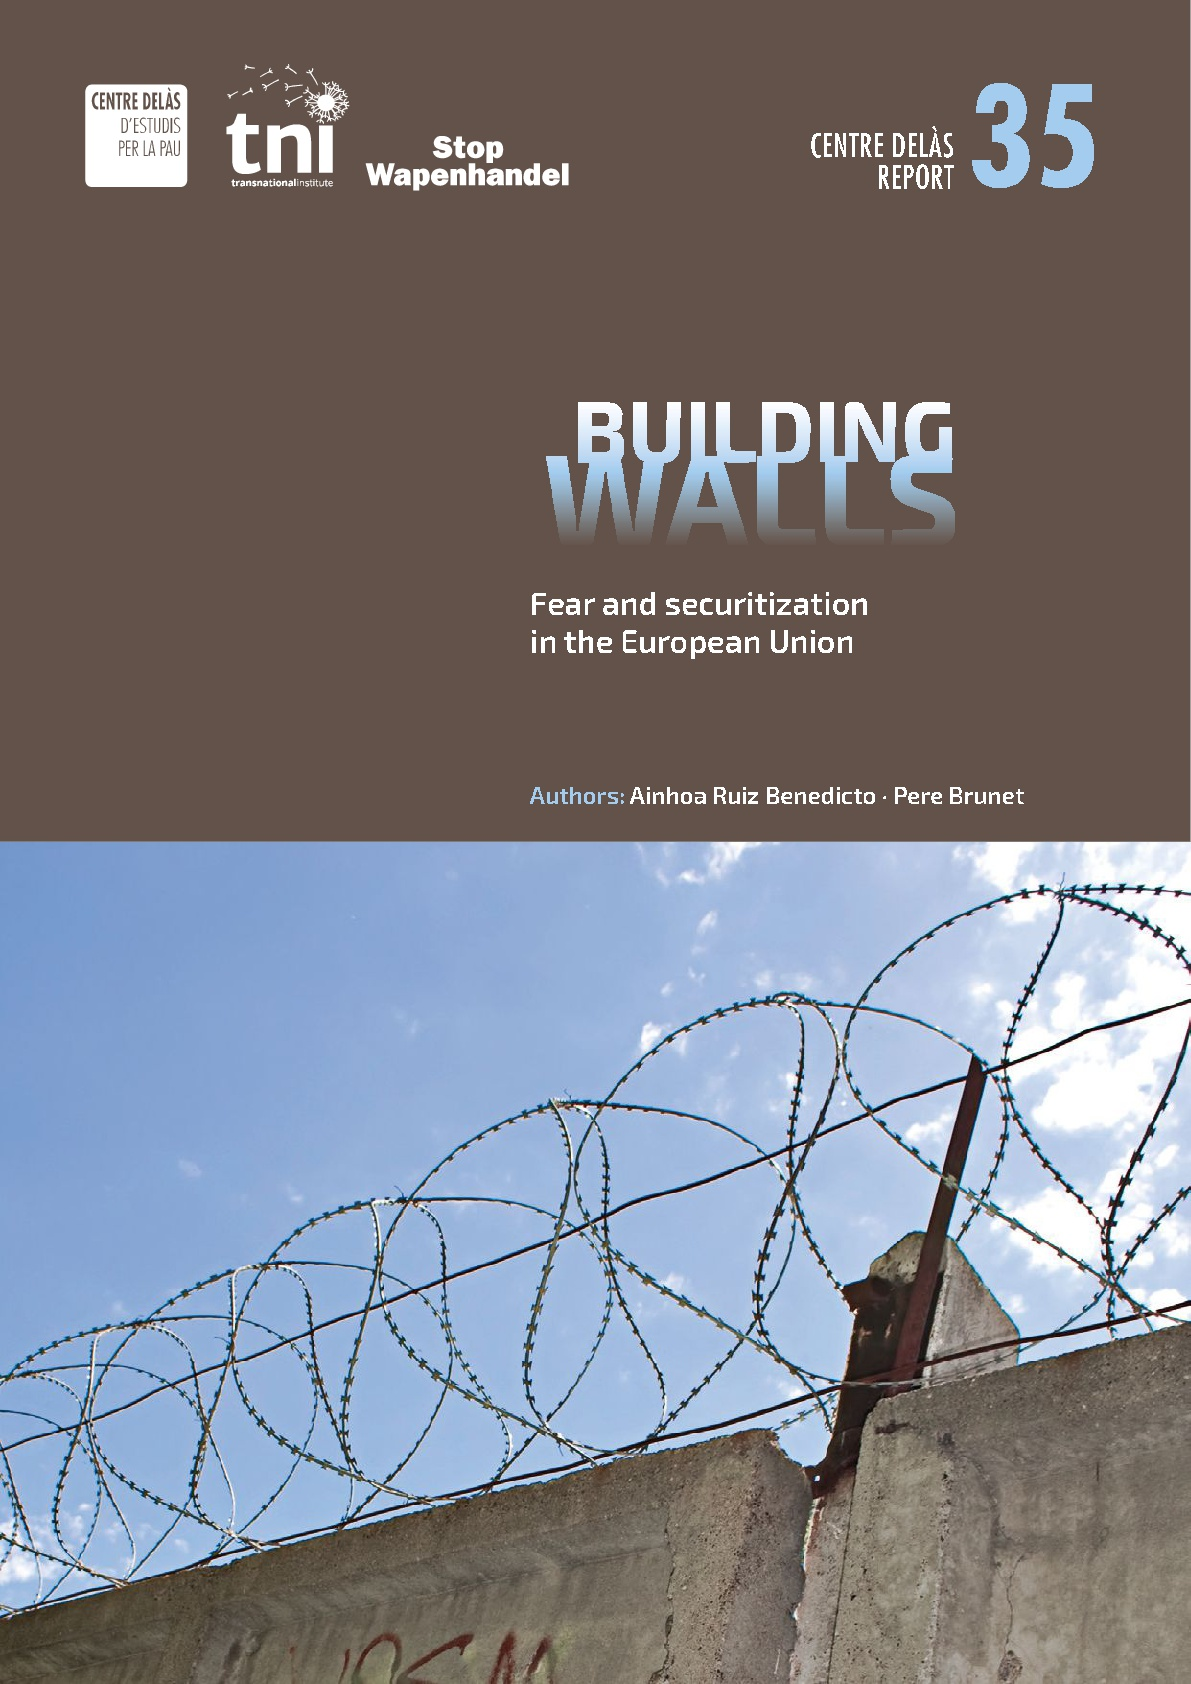 Report 35: Building Walls. Policies of fear and securitization in the European Union